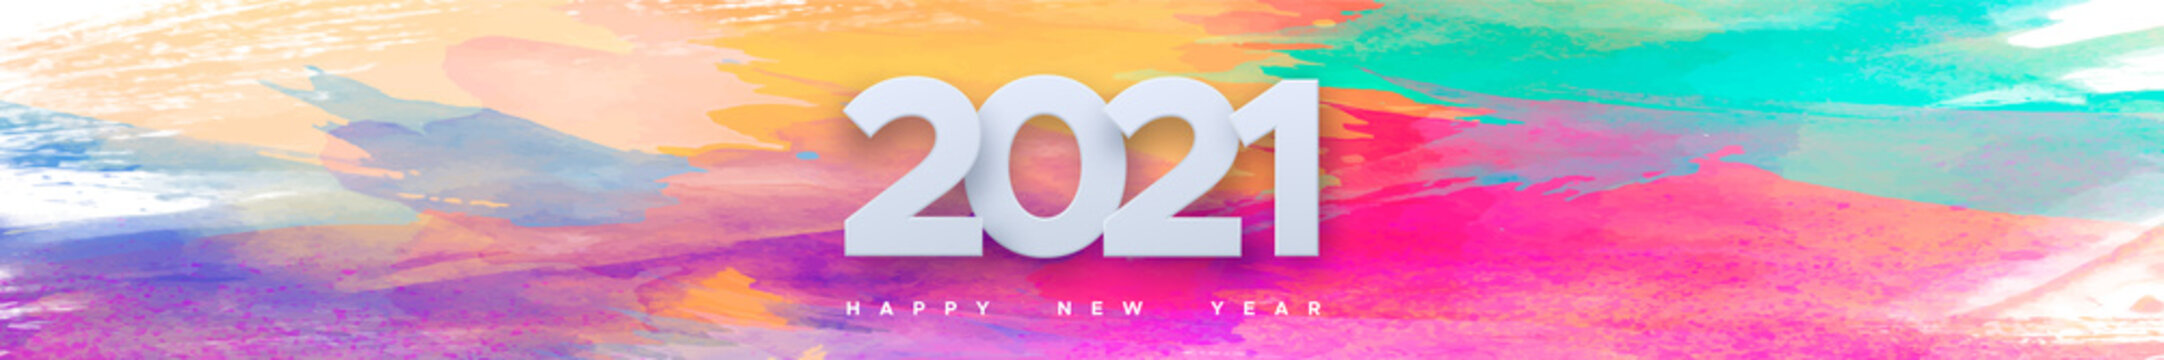 Coming 2021 with new year wish on watercolor background